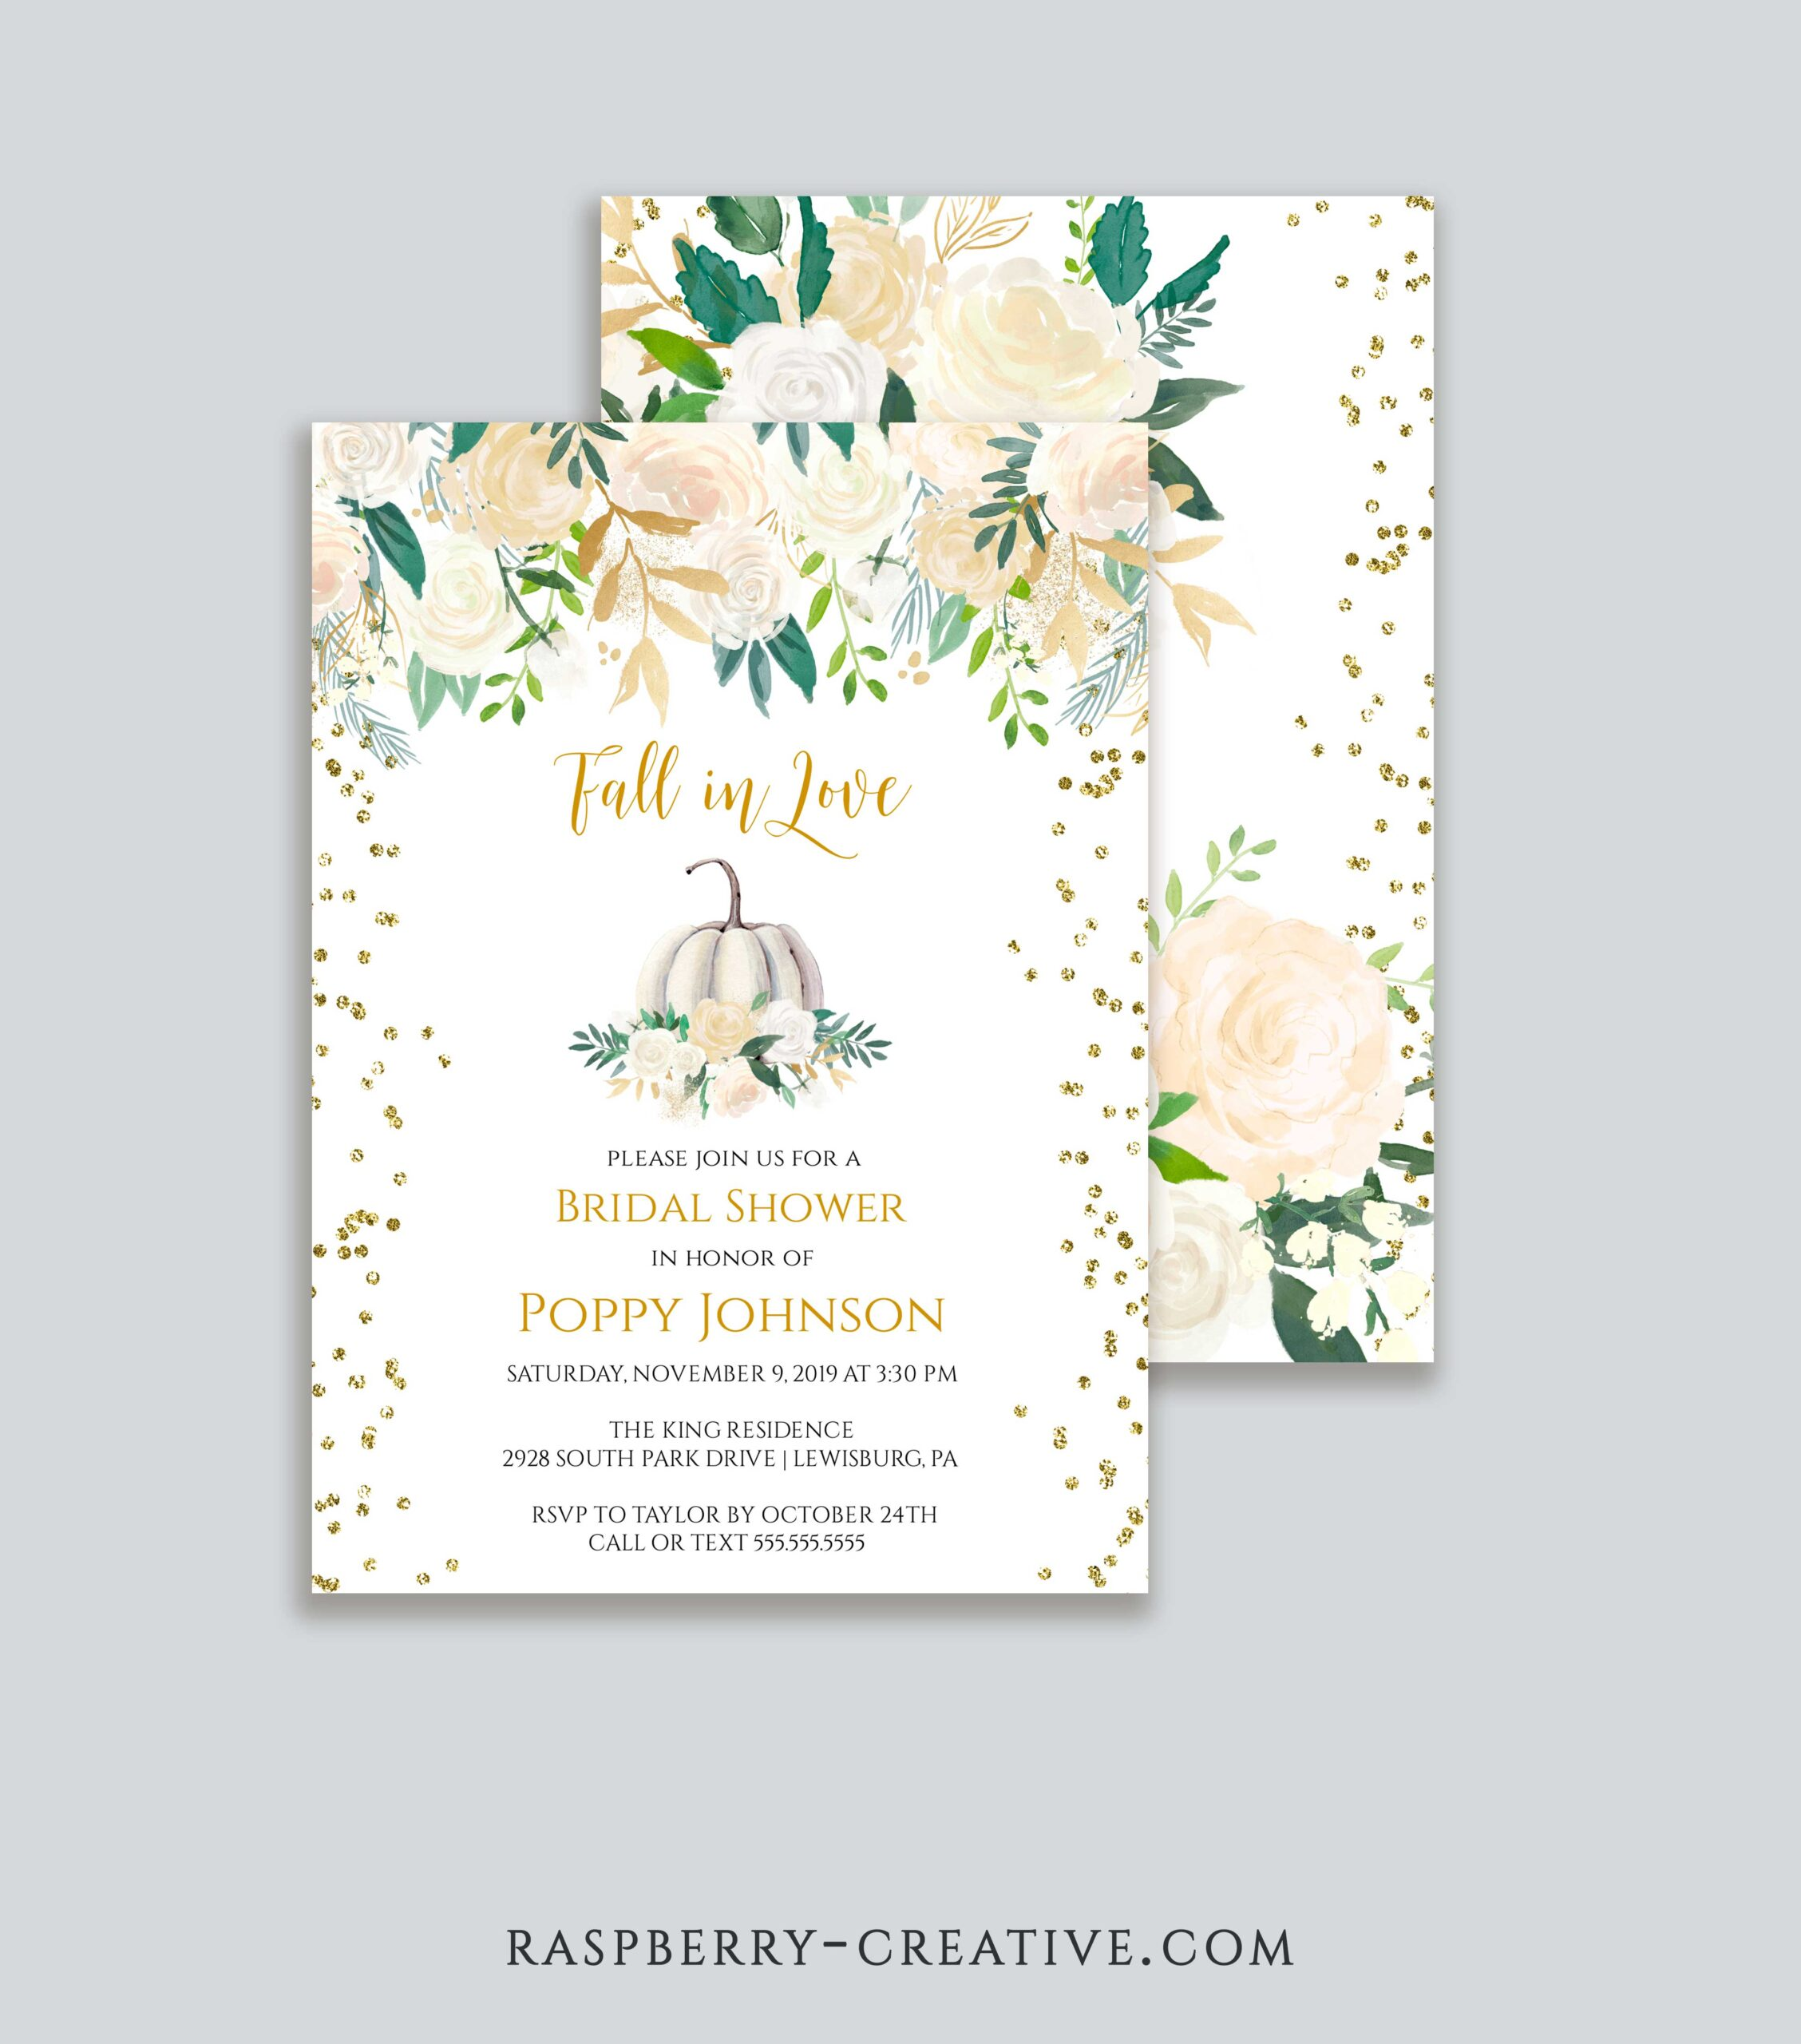 White Roses Gold Pumpkin Fall in Love Bridal Shower Invitation